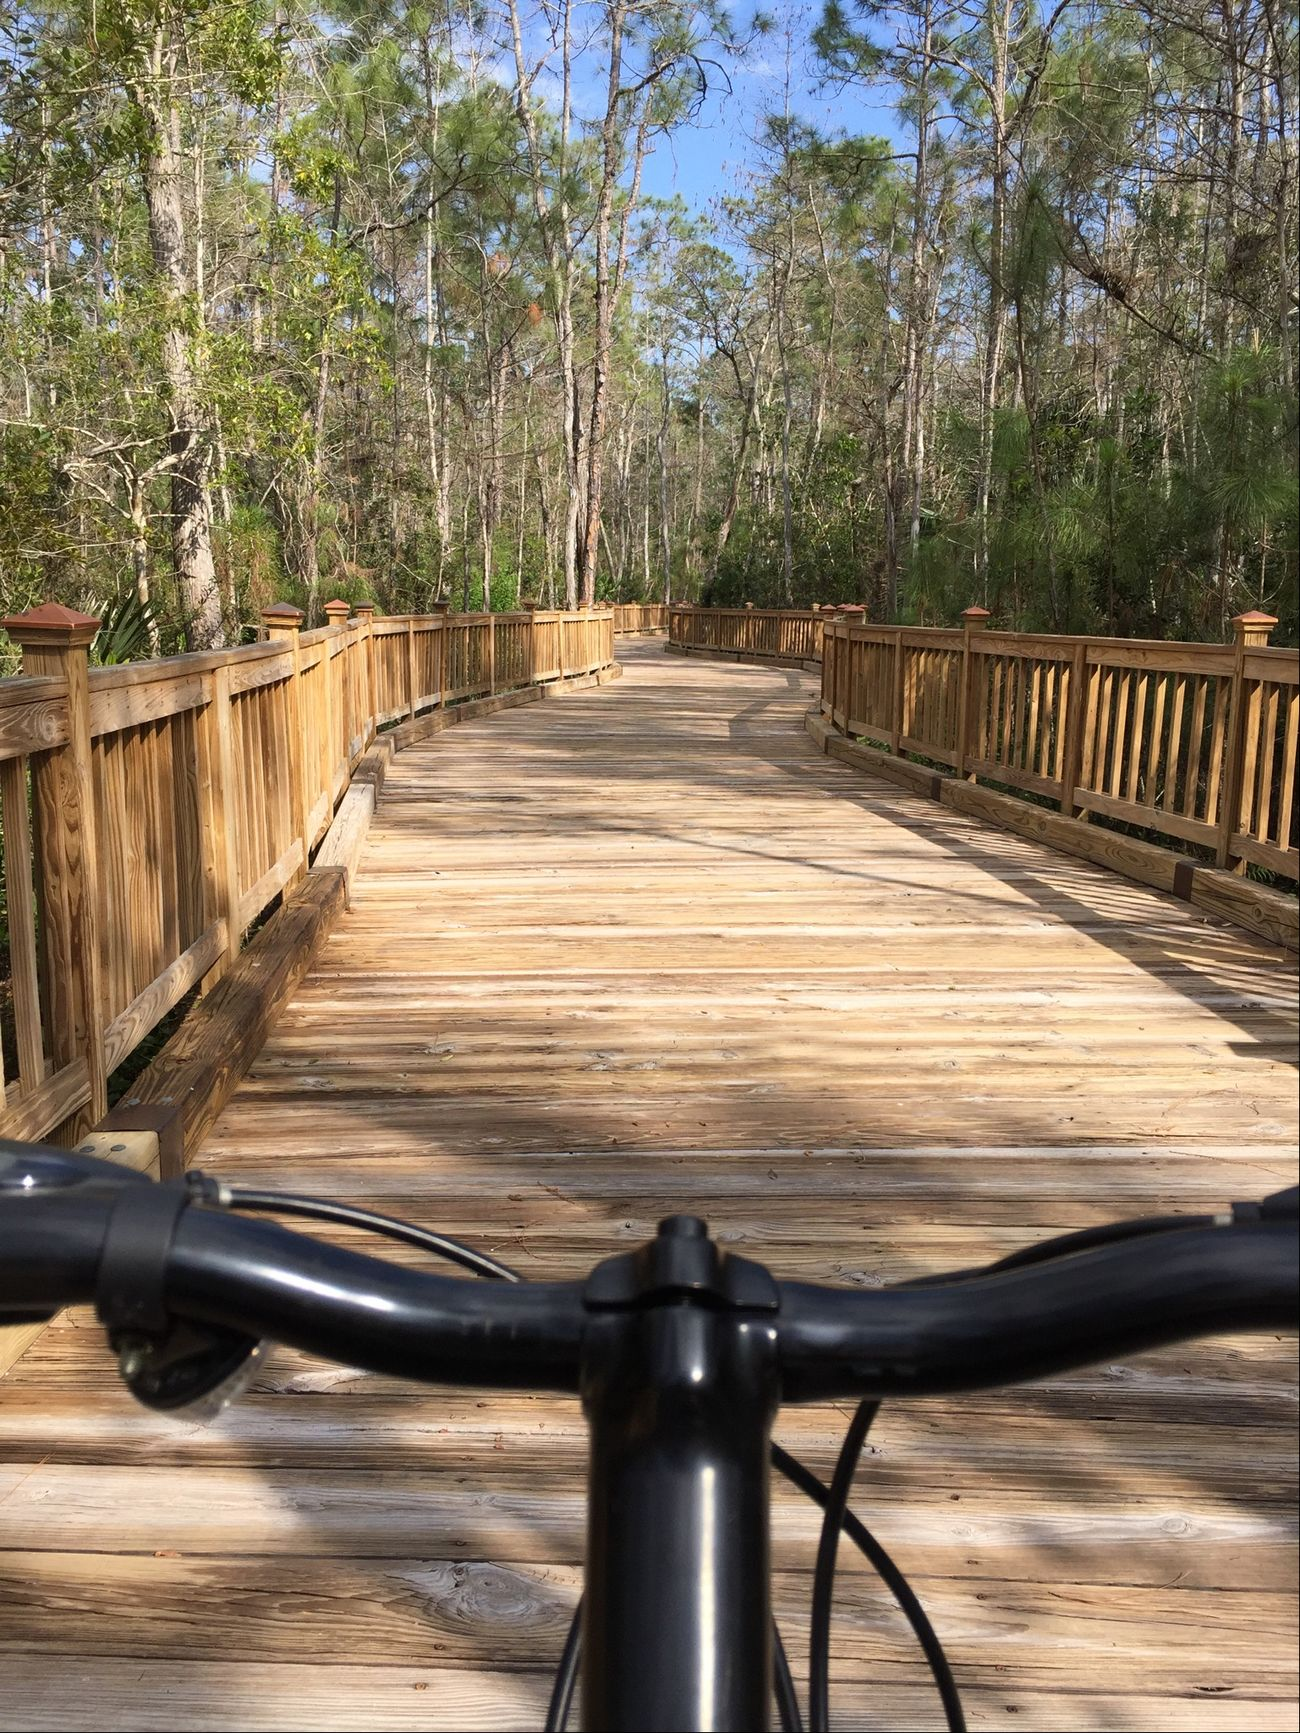 The Places I've Been Today Biking the boardwalk. Tadaa Community Florida Biking